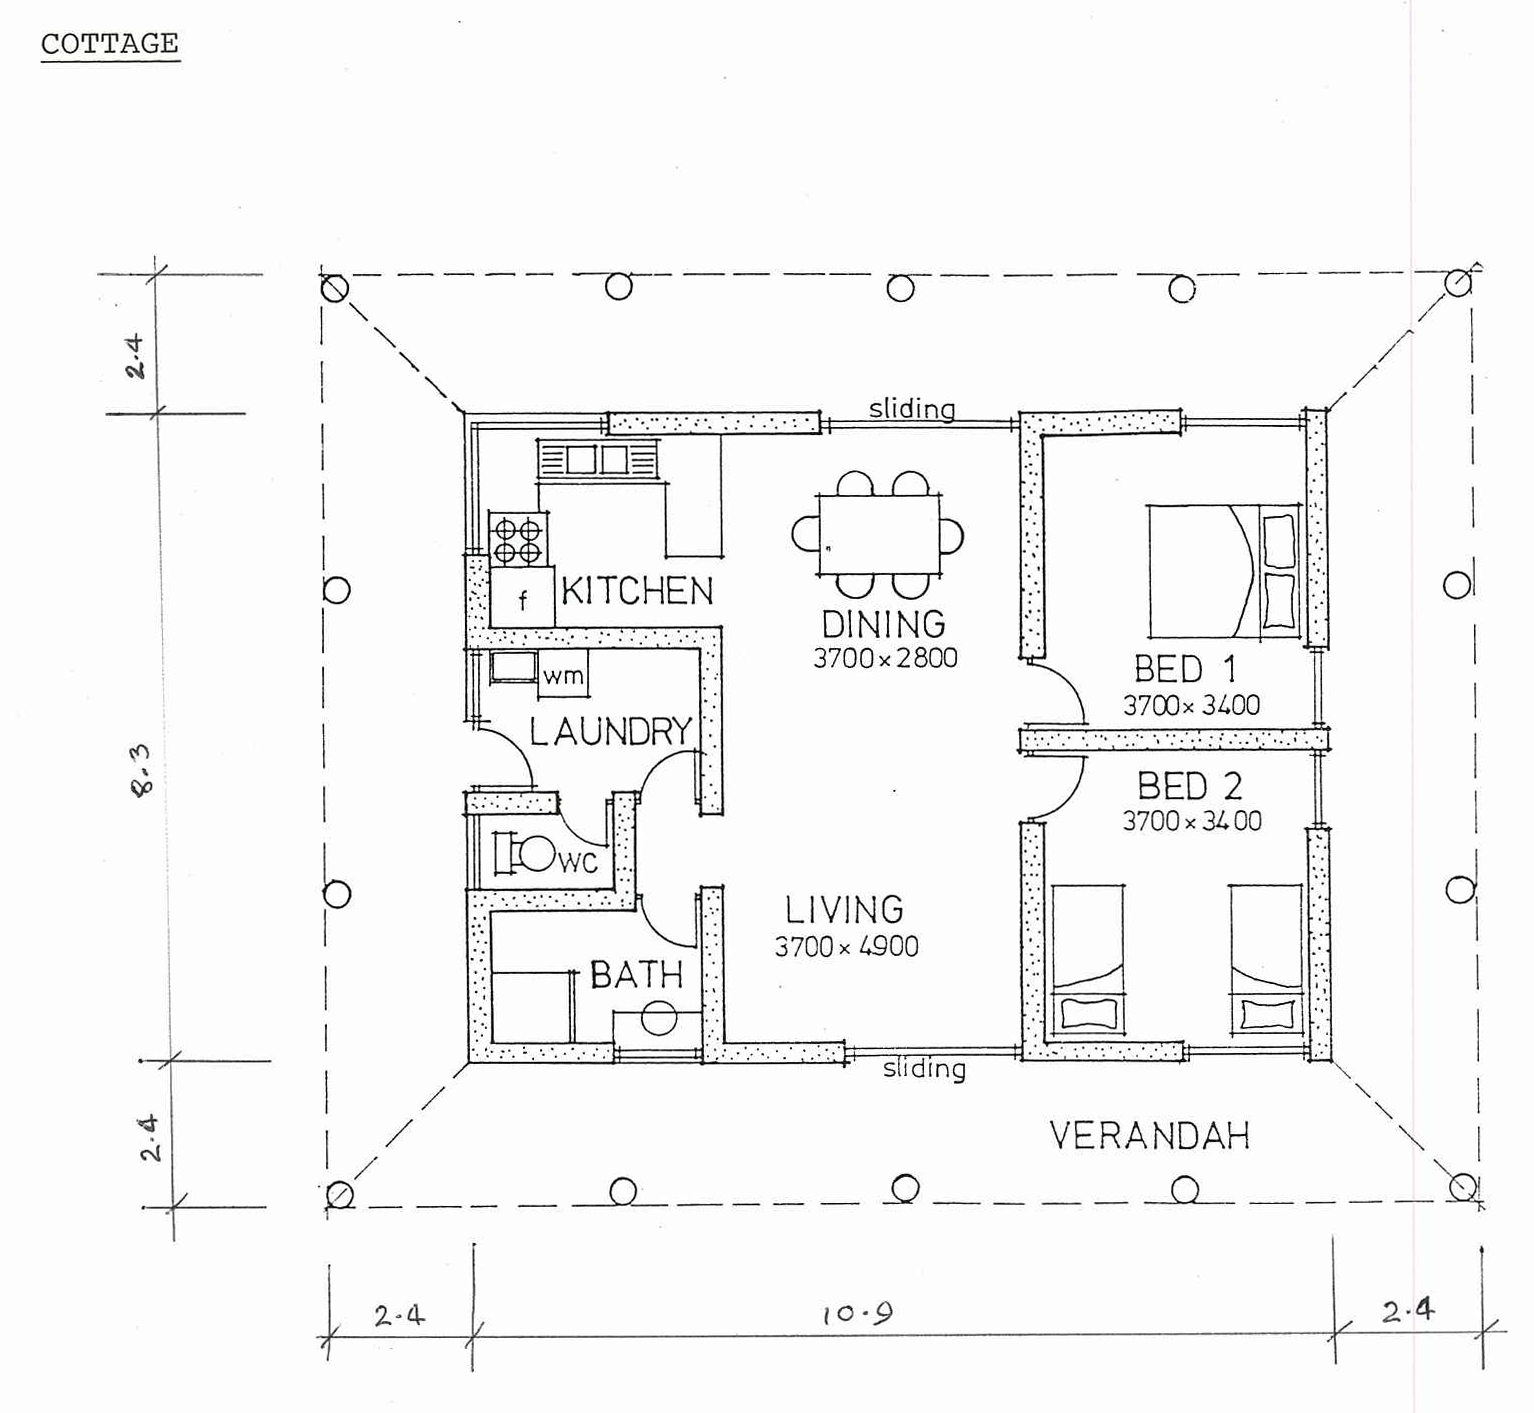 Image result for rammed earth floor plans | Drawing house ... on earth block home plans, energy home plans, roof home plans, cement home plans, pavilion home plans, architects home plans, earth sheltered home plans, cobb home plans, beautiful earth home plans, earthship home plans, masonry home plans, plywood home plans, sod home plans, cinder block home plans, sips home plans, church home plans, red brick home plans, mud home plans, permaculture home plans,